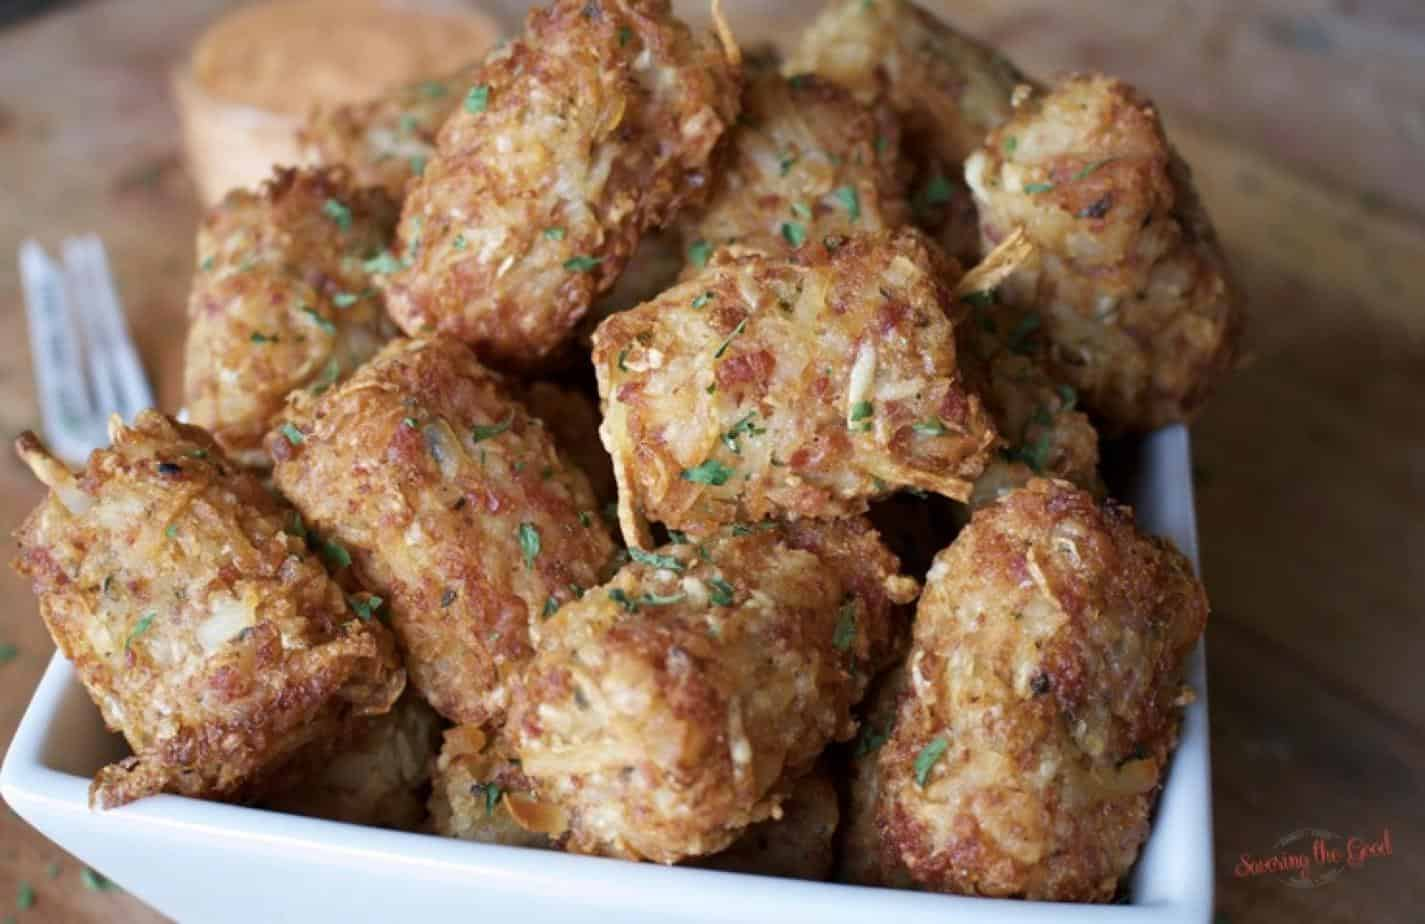 After St. Patrick's Day there is leftover corned beef. This is an easy recipe to use up leftover corned beef. Rueben tater tots have all the flavors of a classic reuben sandwich in tater tot form. Follow easy steps to make your own tater tots.